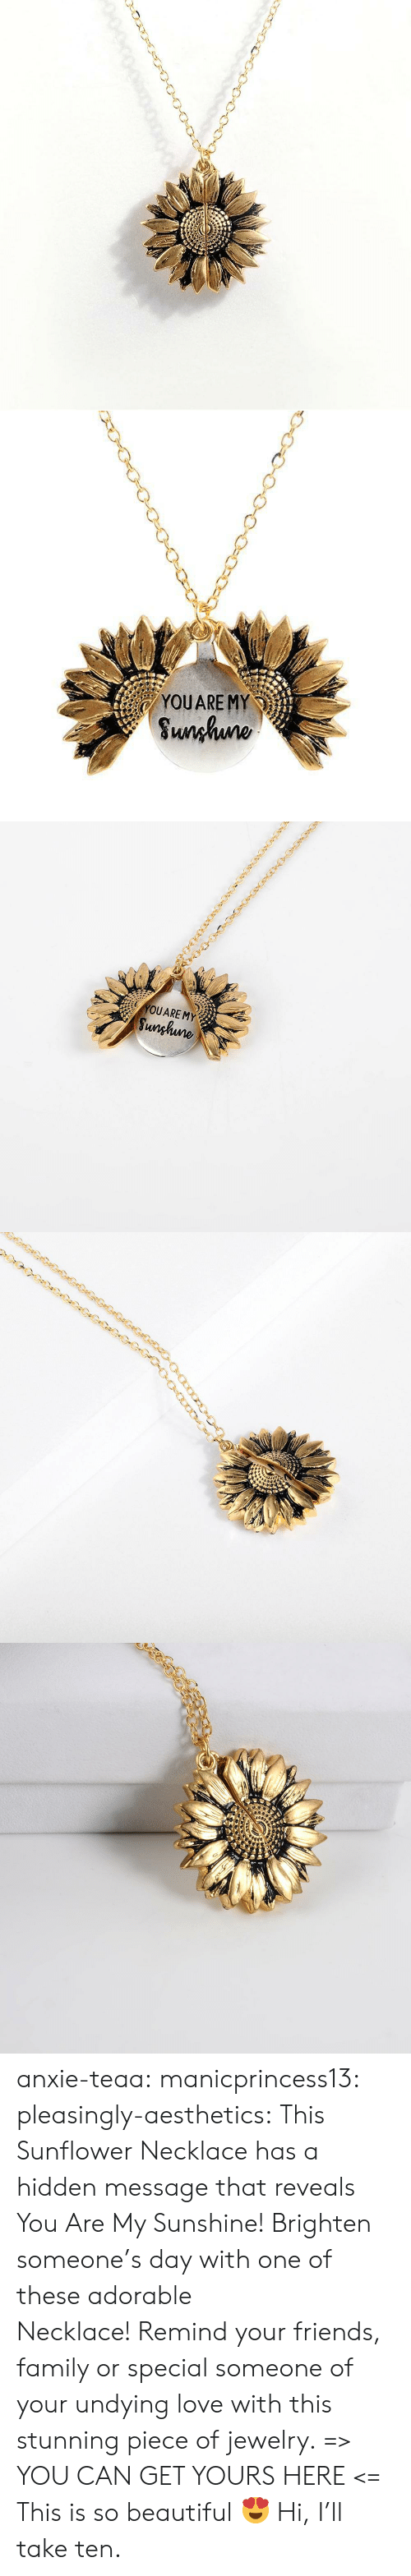 Beautiful, Family, and Friends: YOUARE MY  Sunhuno   YOUARE MY  Sunghune anxie-teaa:  manicprincess13:  pleasingly-aesthetics: This Sunflower Necklace has a hidden message that reveals You Are My Sunshine! Brighten someone's day with one of these adorable Necklace! Remind your friends, family or special someone of your undying love with this stunning piece of jewelry. => YOU CAN GET YOURS HERE <=   This is so beautiful 😍   Hi, I'll take ten.